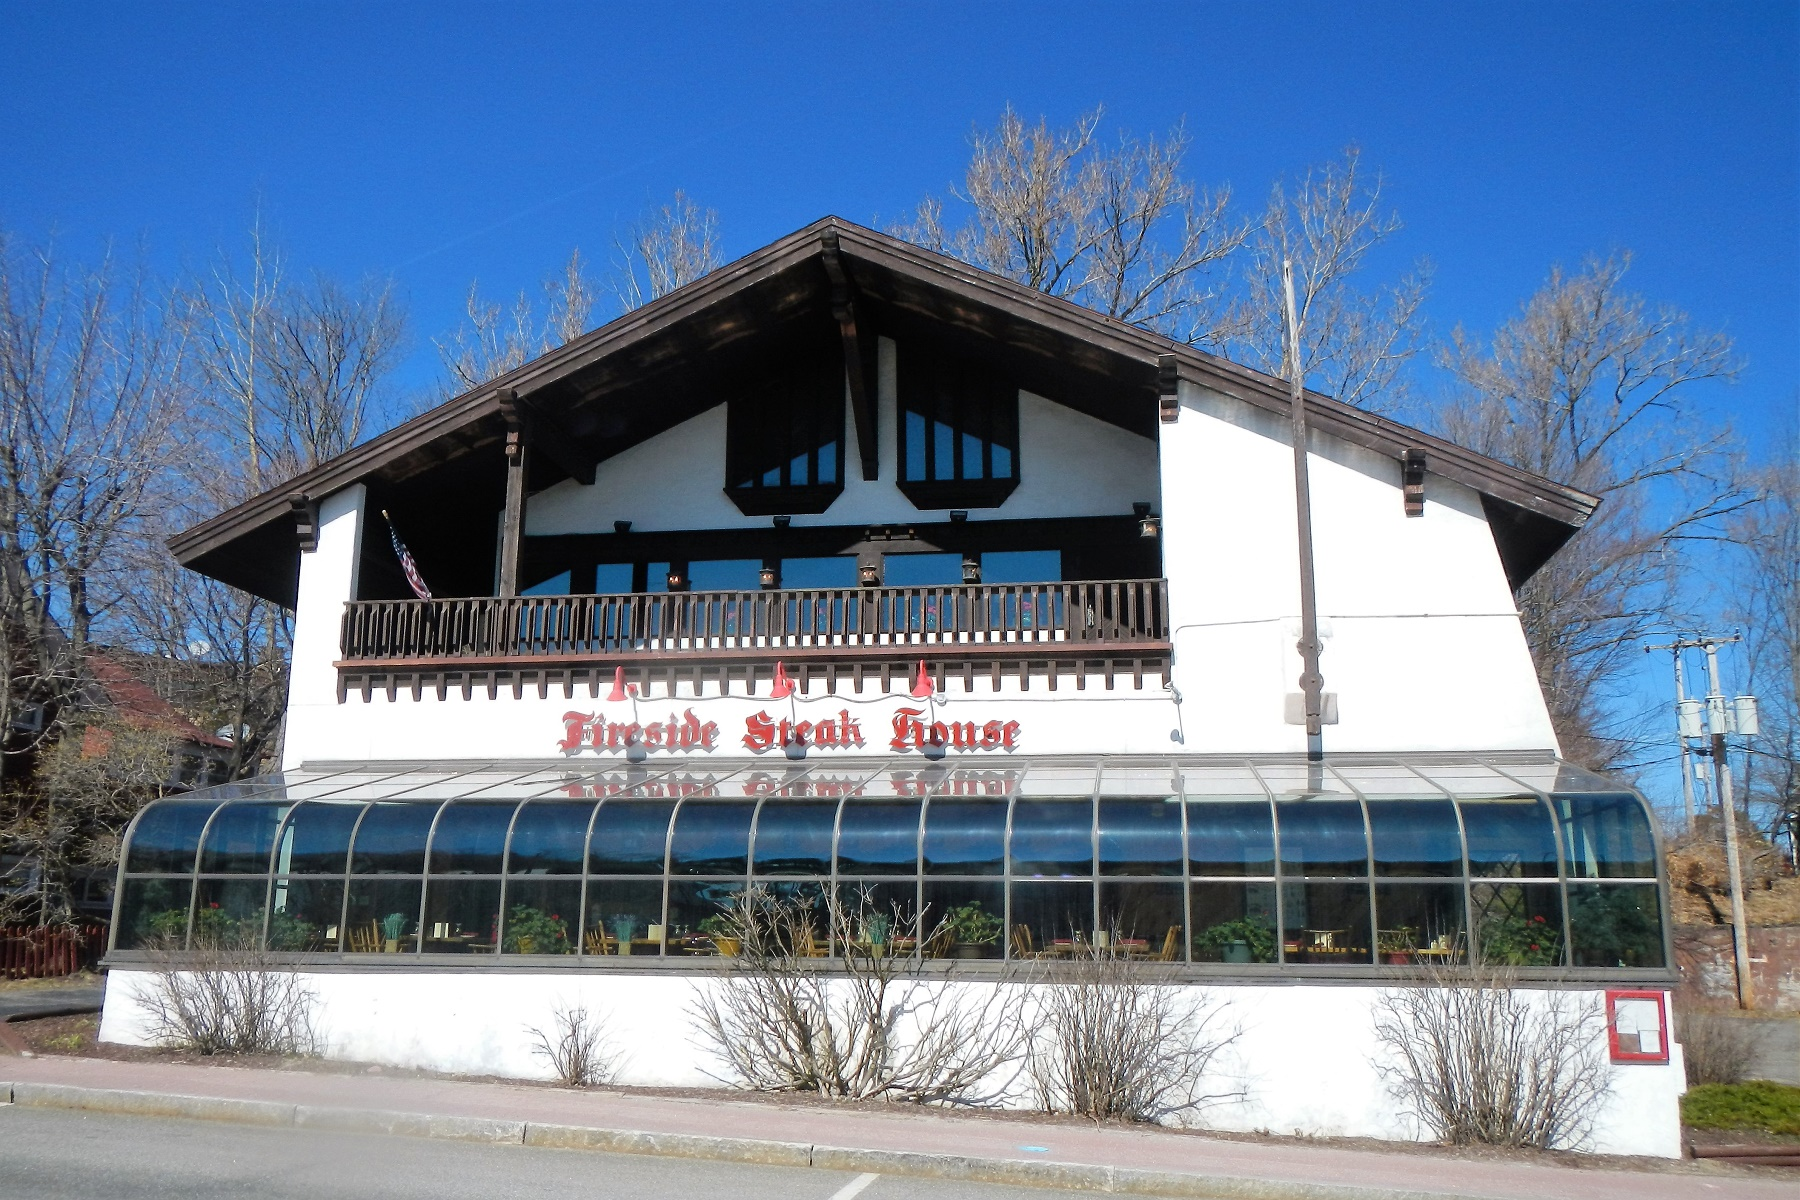 Commercial for Sale at Fireside Steak House 2653 Main St Lake Placid, New York 12946 United States